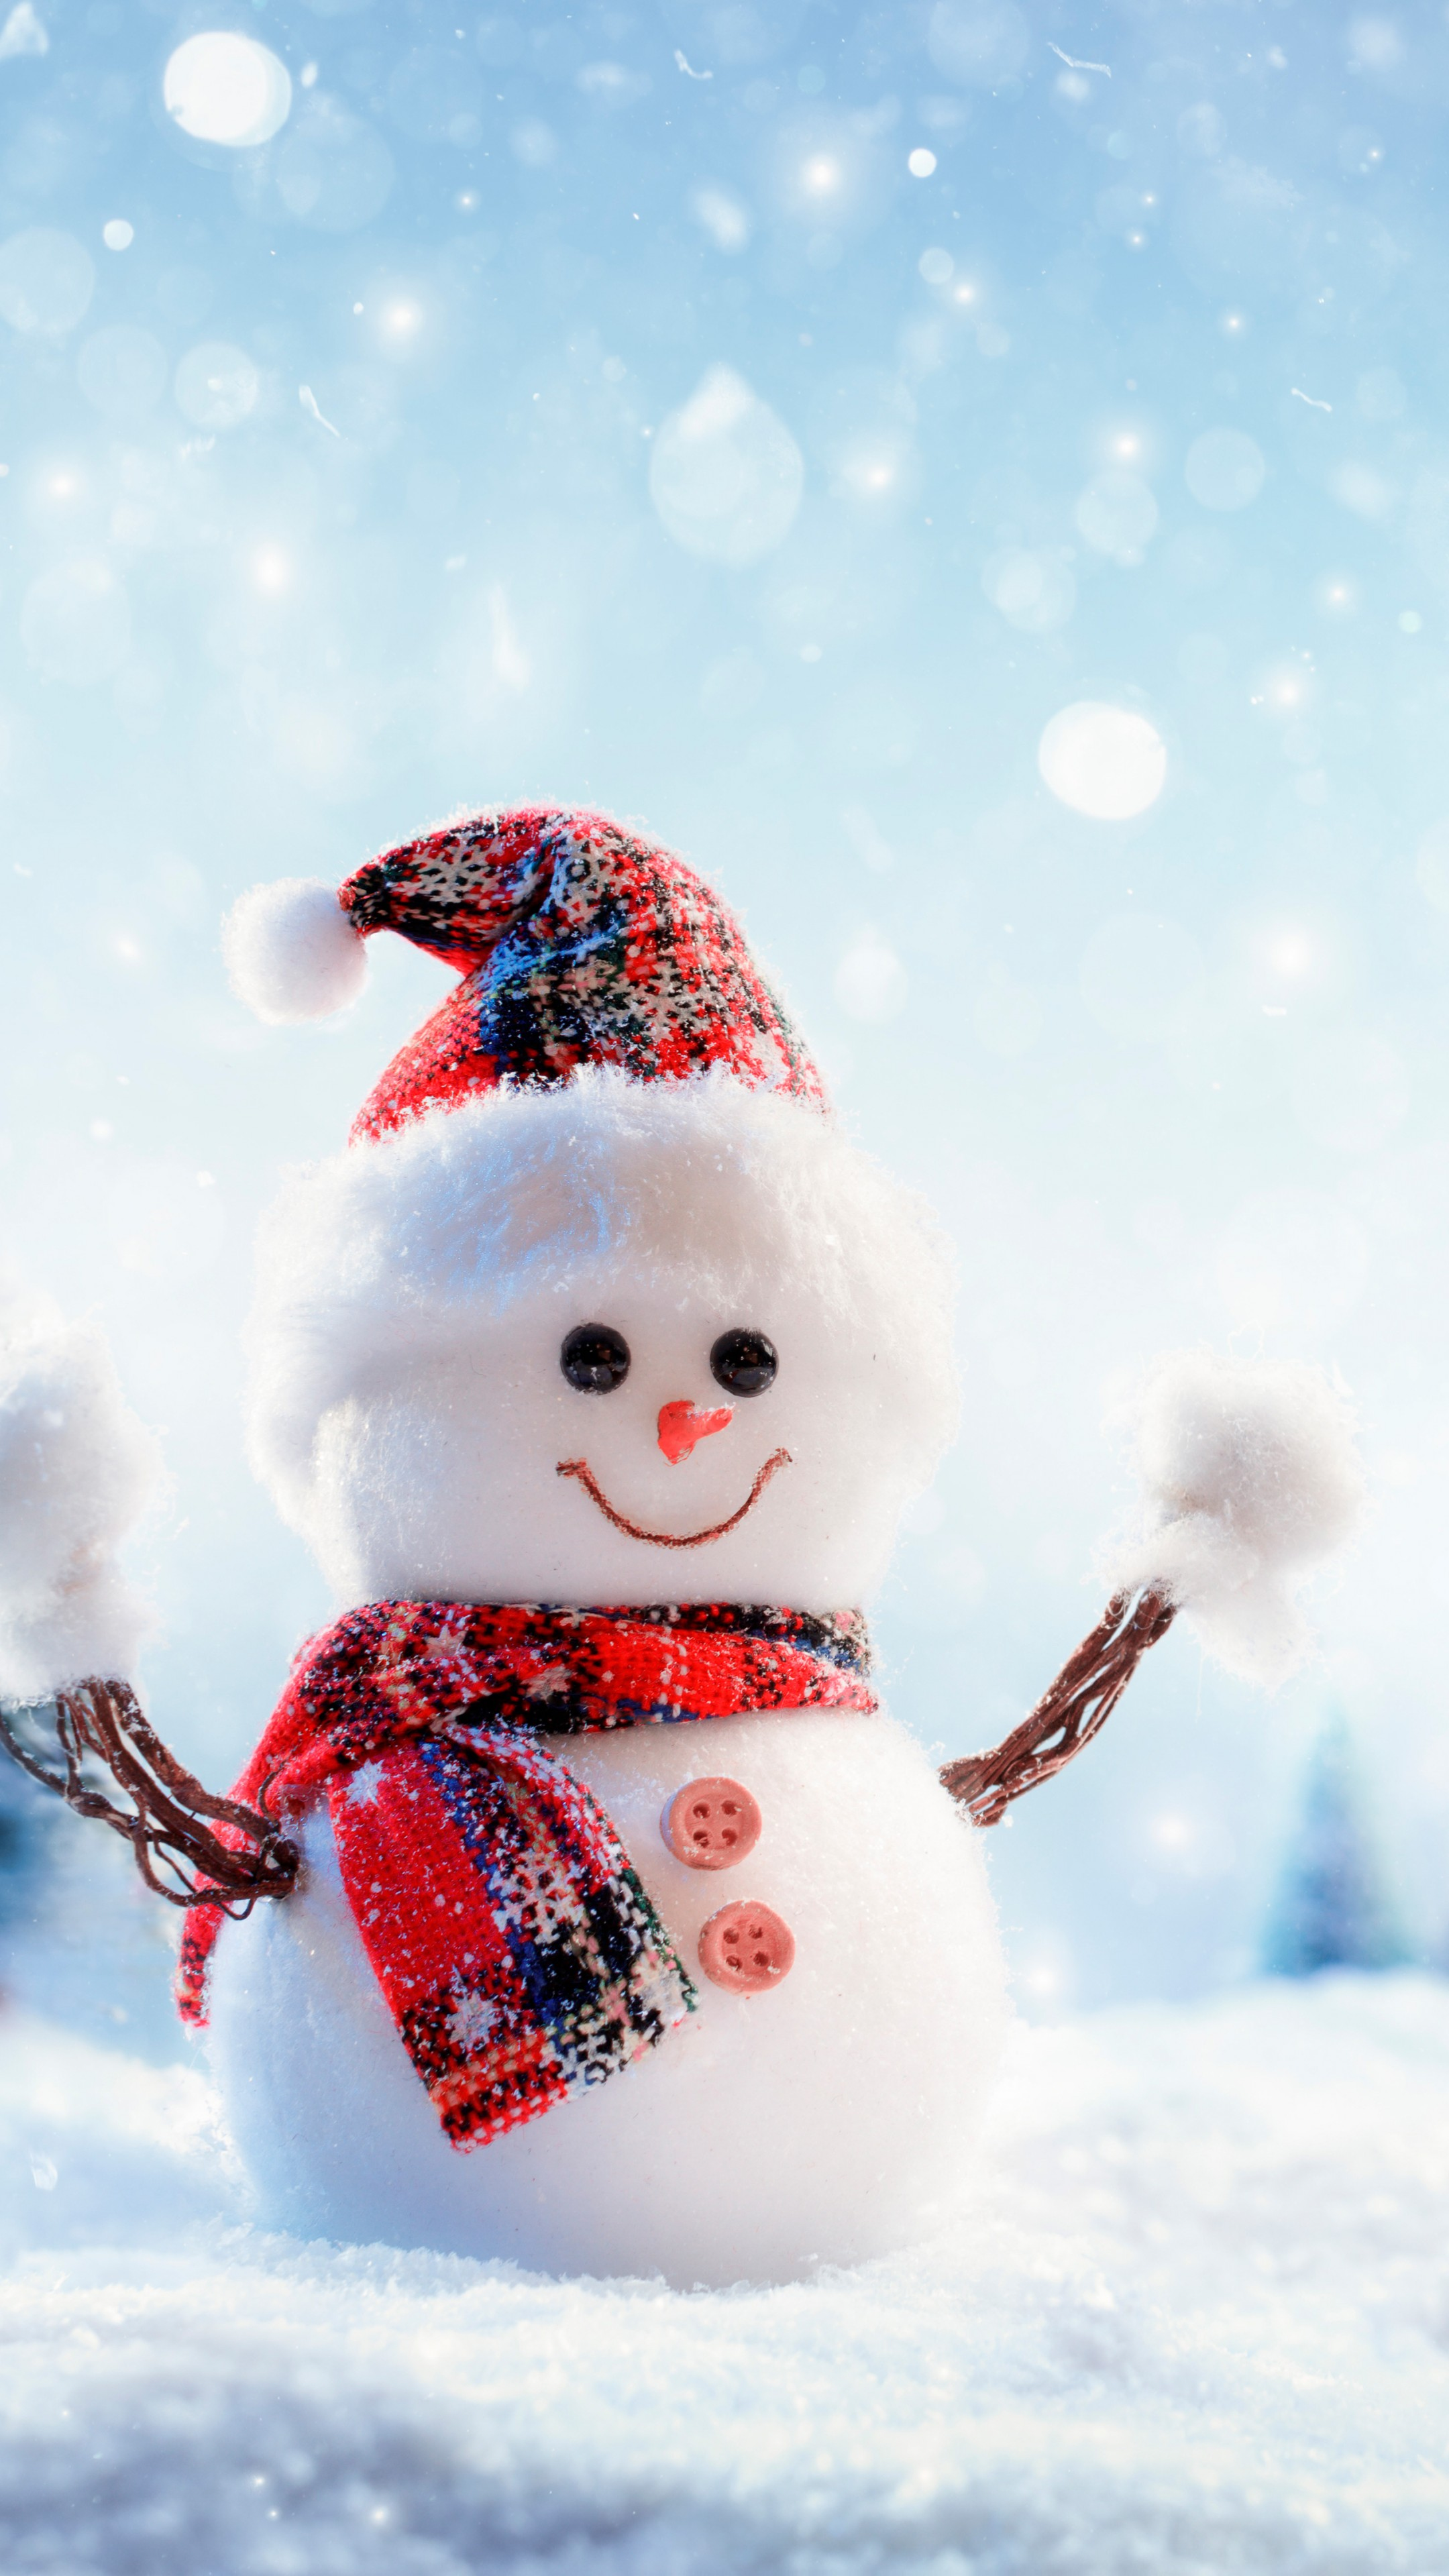 New Year Quotes: Wallpaper Christmas, New Year, Snow, Winter, Snowman, 8k